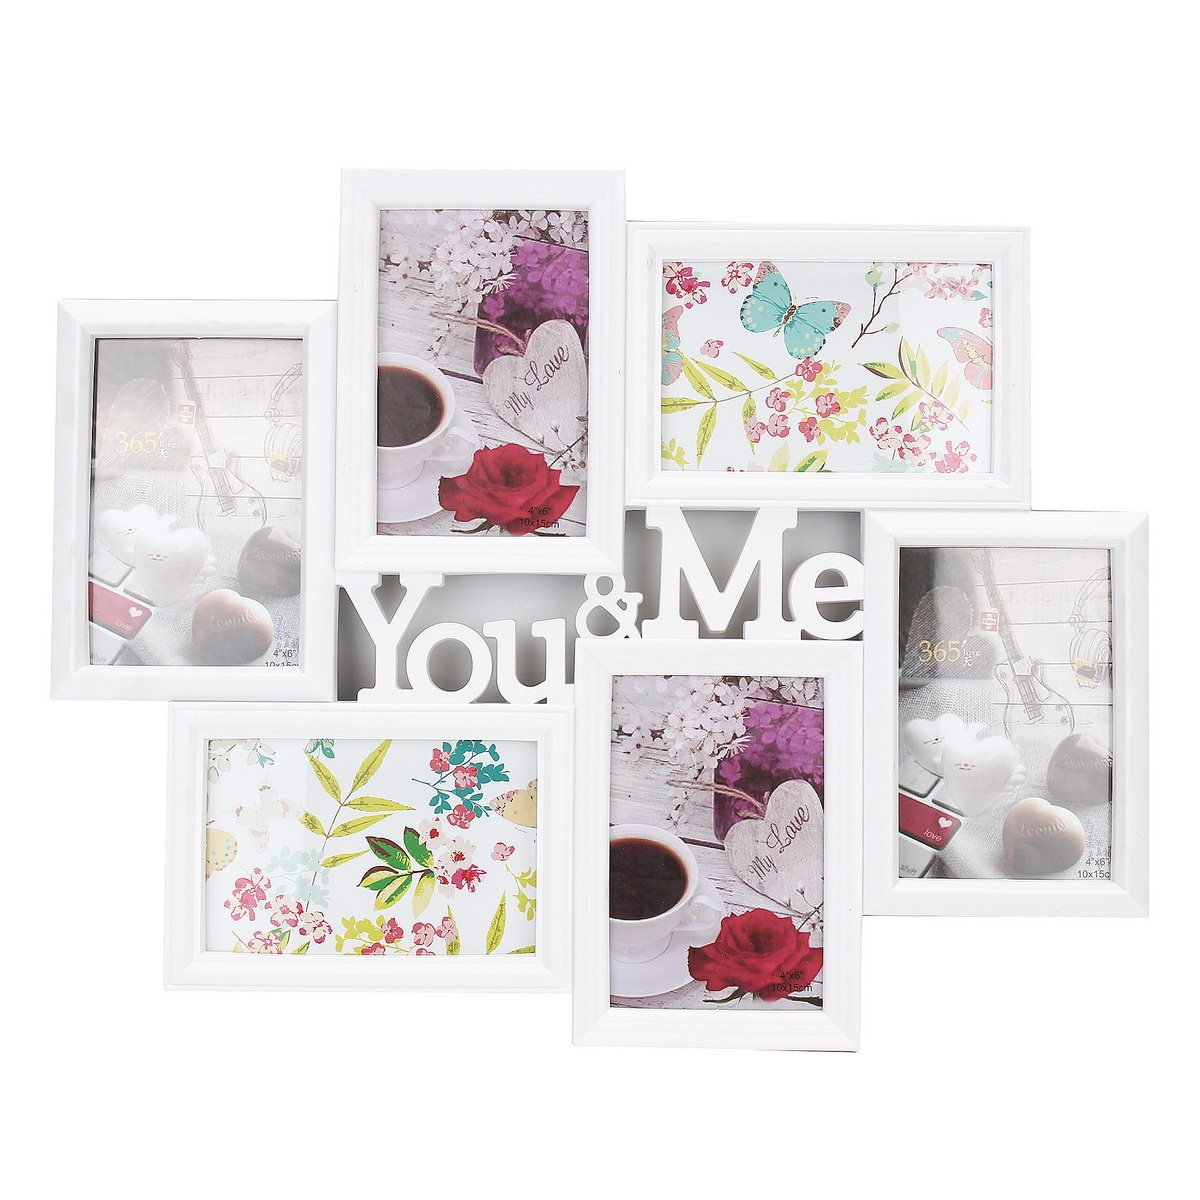 You&Me Pictures 6 Images Display Aperture Photo Frame Wall Decor Collage Gift 6 Inch Photo Love Theme Frame Household Decoration(China (Mainland))